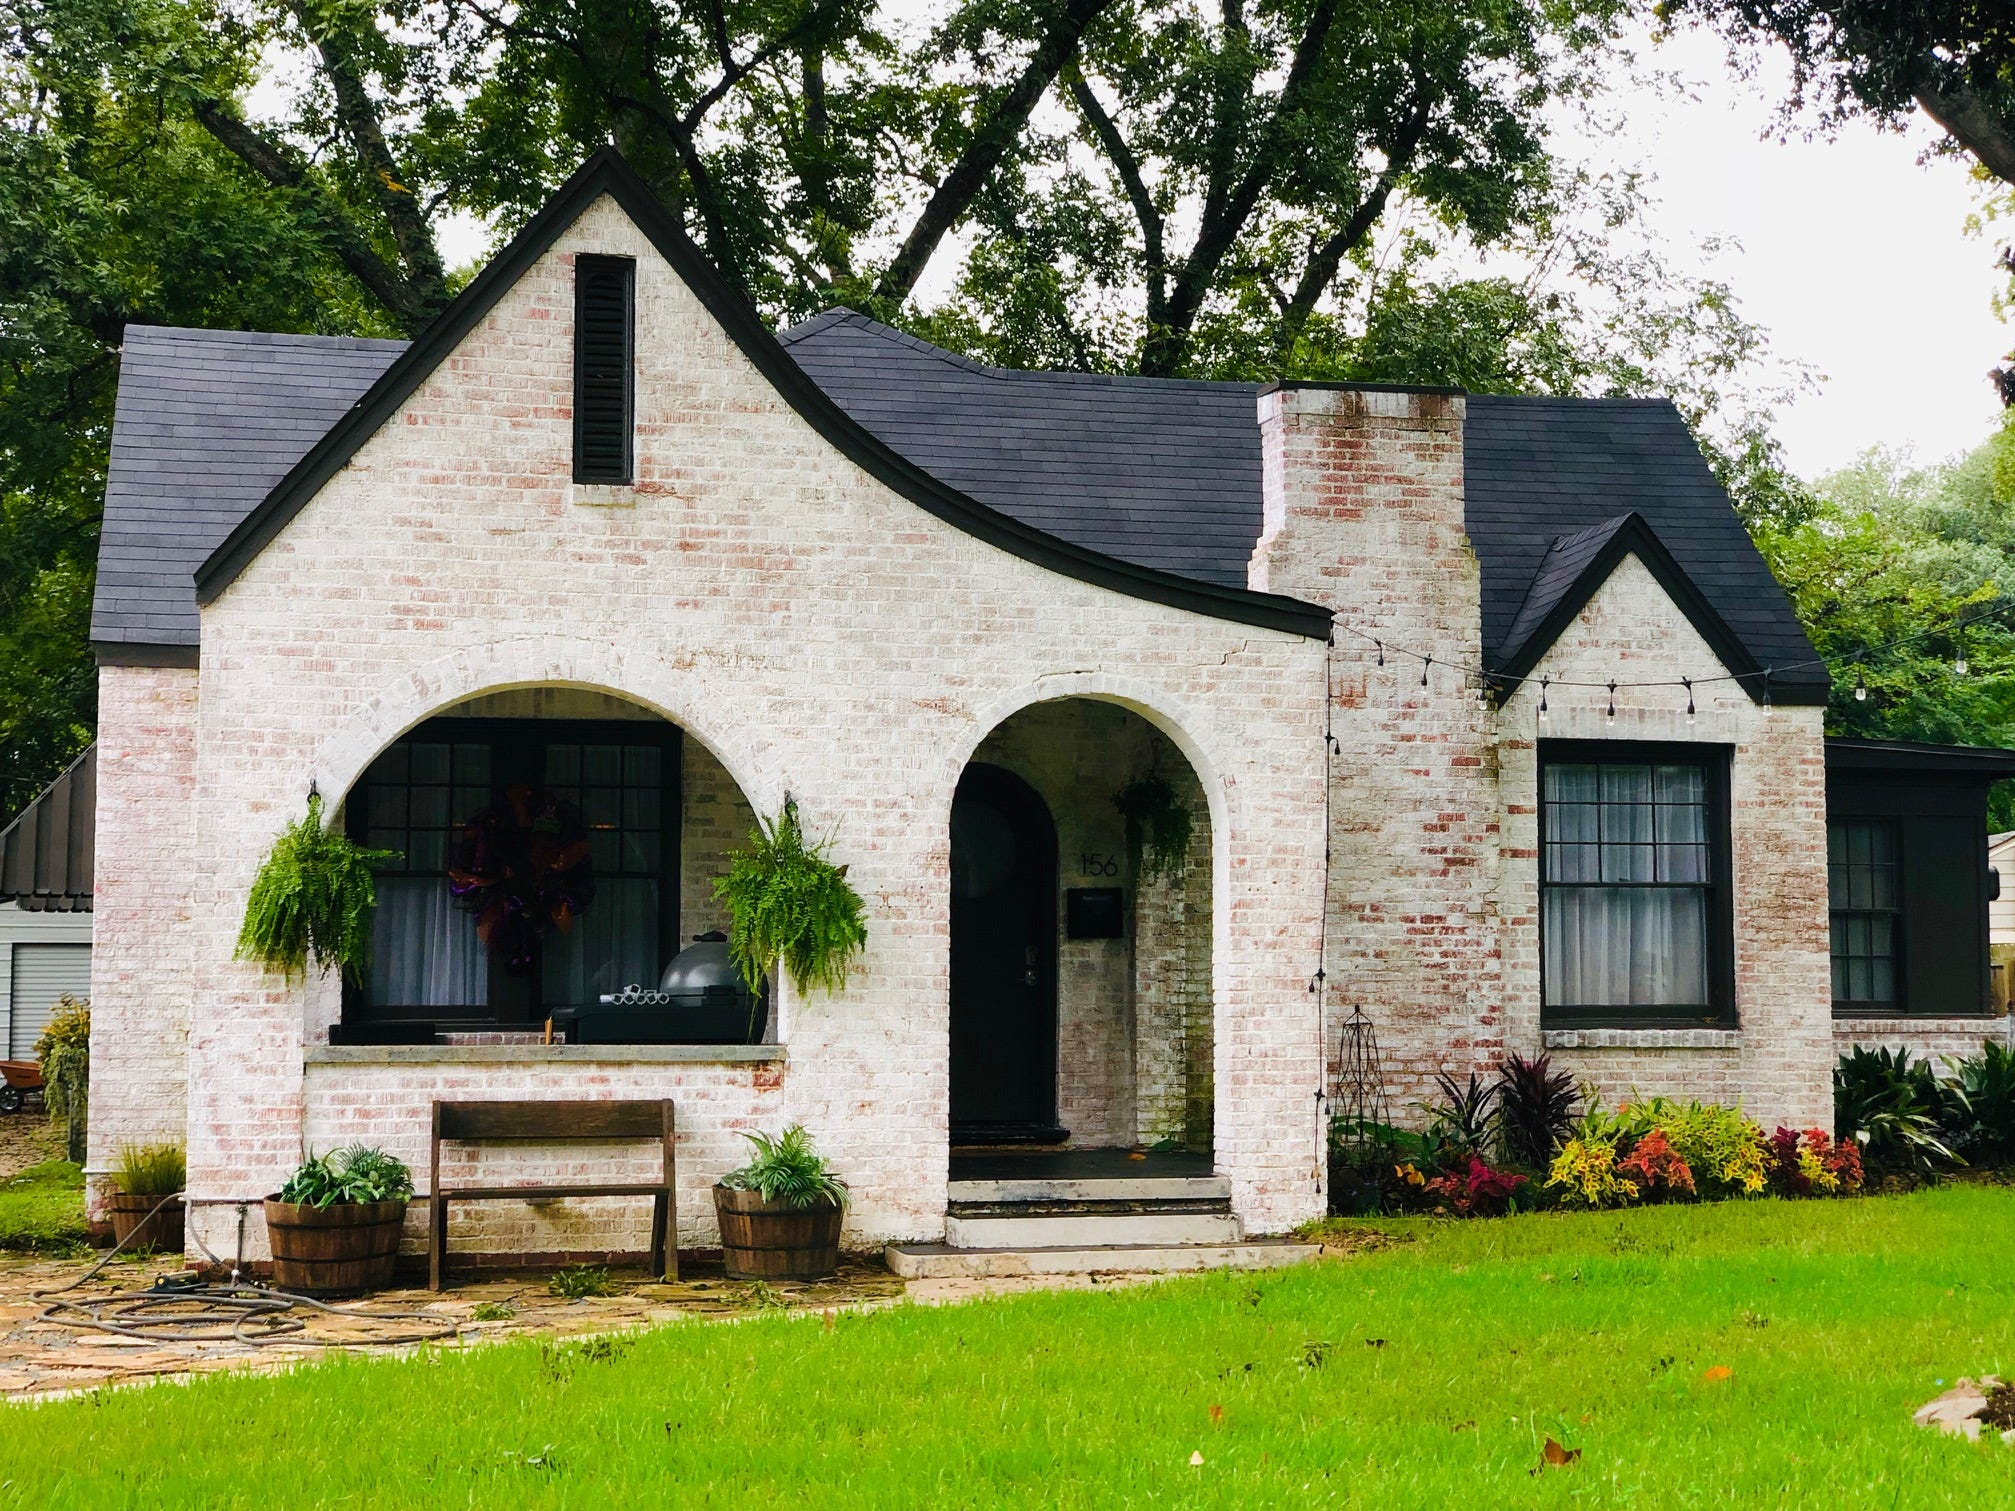 156 Ardmore Ave.,   Shreveport  Price: $249,000  Details: 3 bedrooms, 3 bathrooms, 2,292 square feet  Special features: Historic Broadmoor home completely remodeled in 2017, quartz countertops, new vinyl plank flooring in bedrooms, new roof and new 400 sq.ft. detached garage.  Contact: Jeremy McConnell, 918-1974